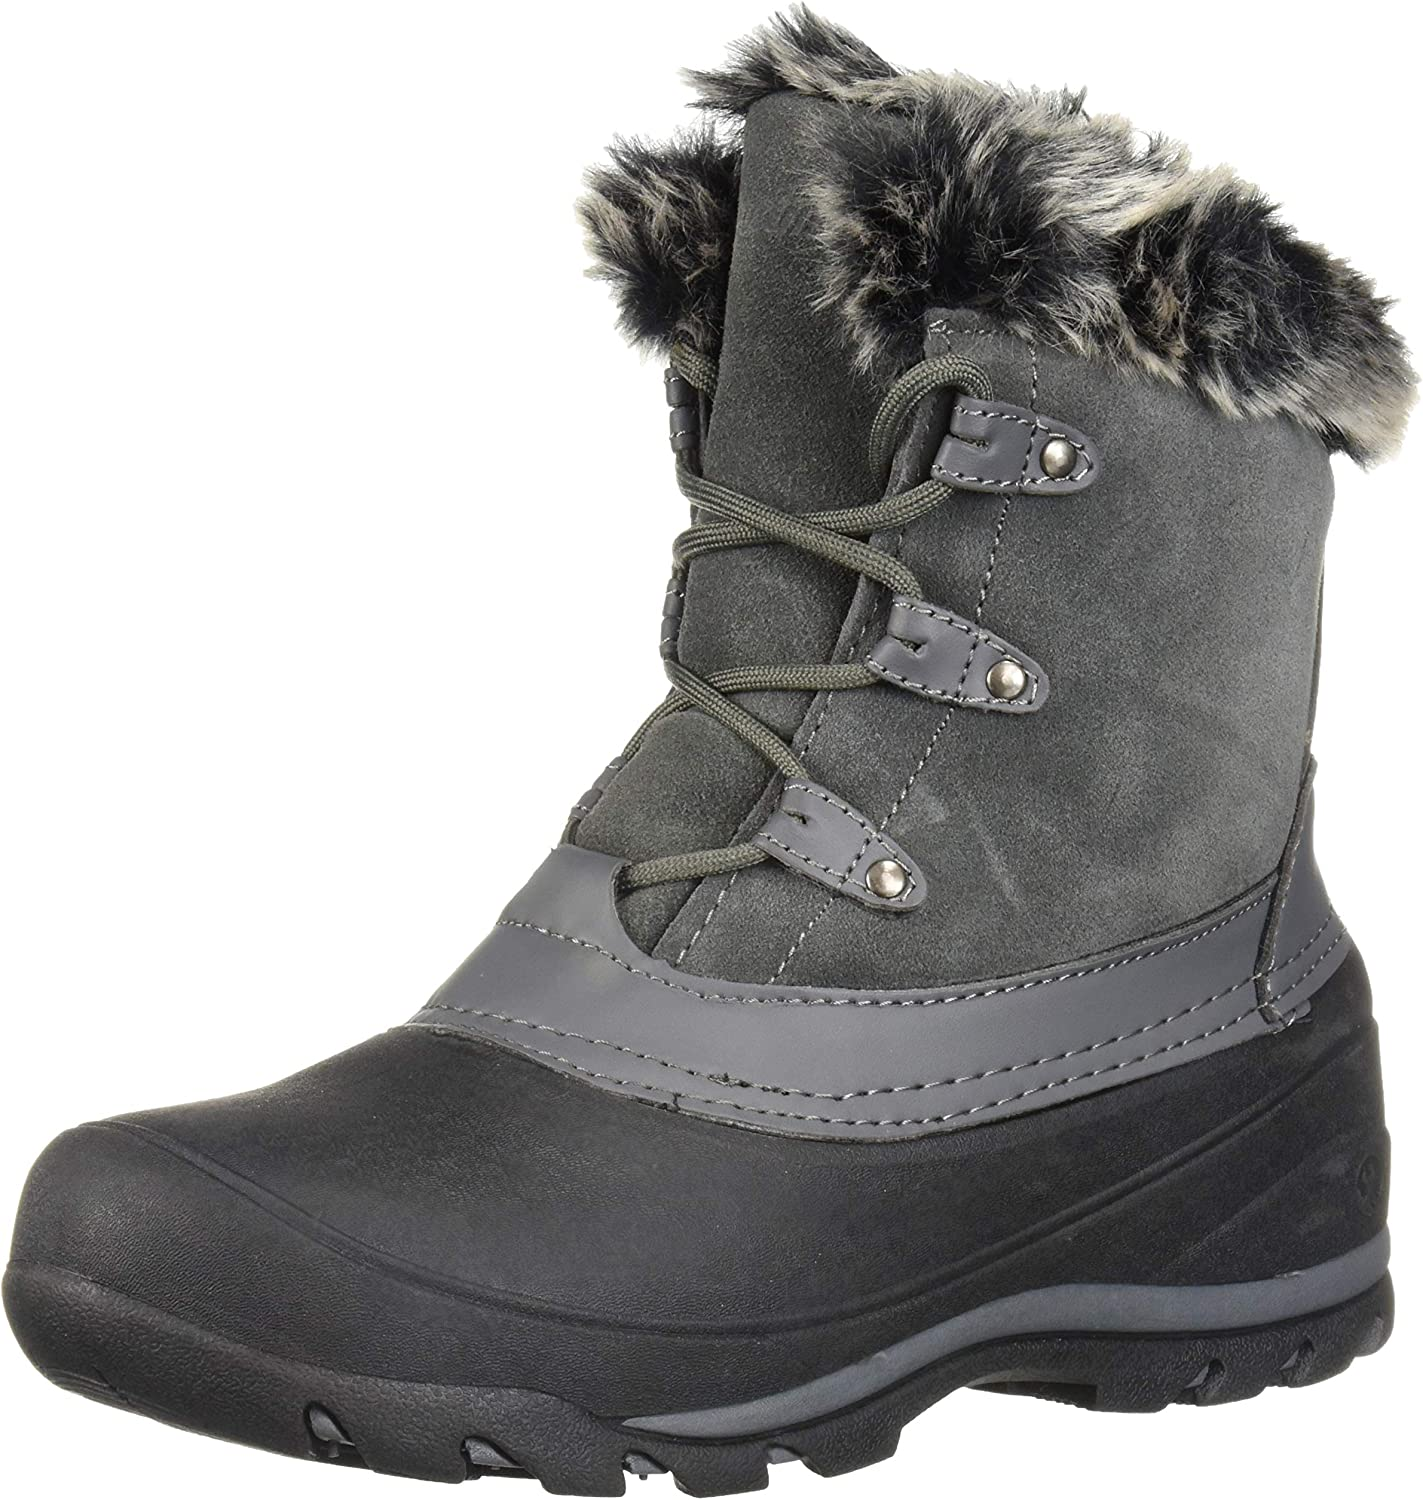 Northside Womens Fairfield Snow Boot